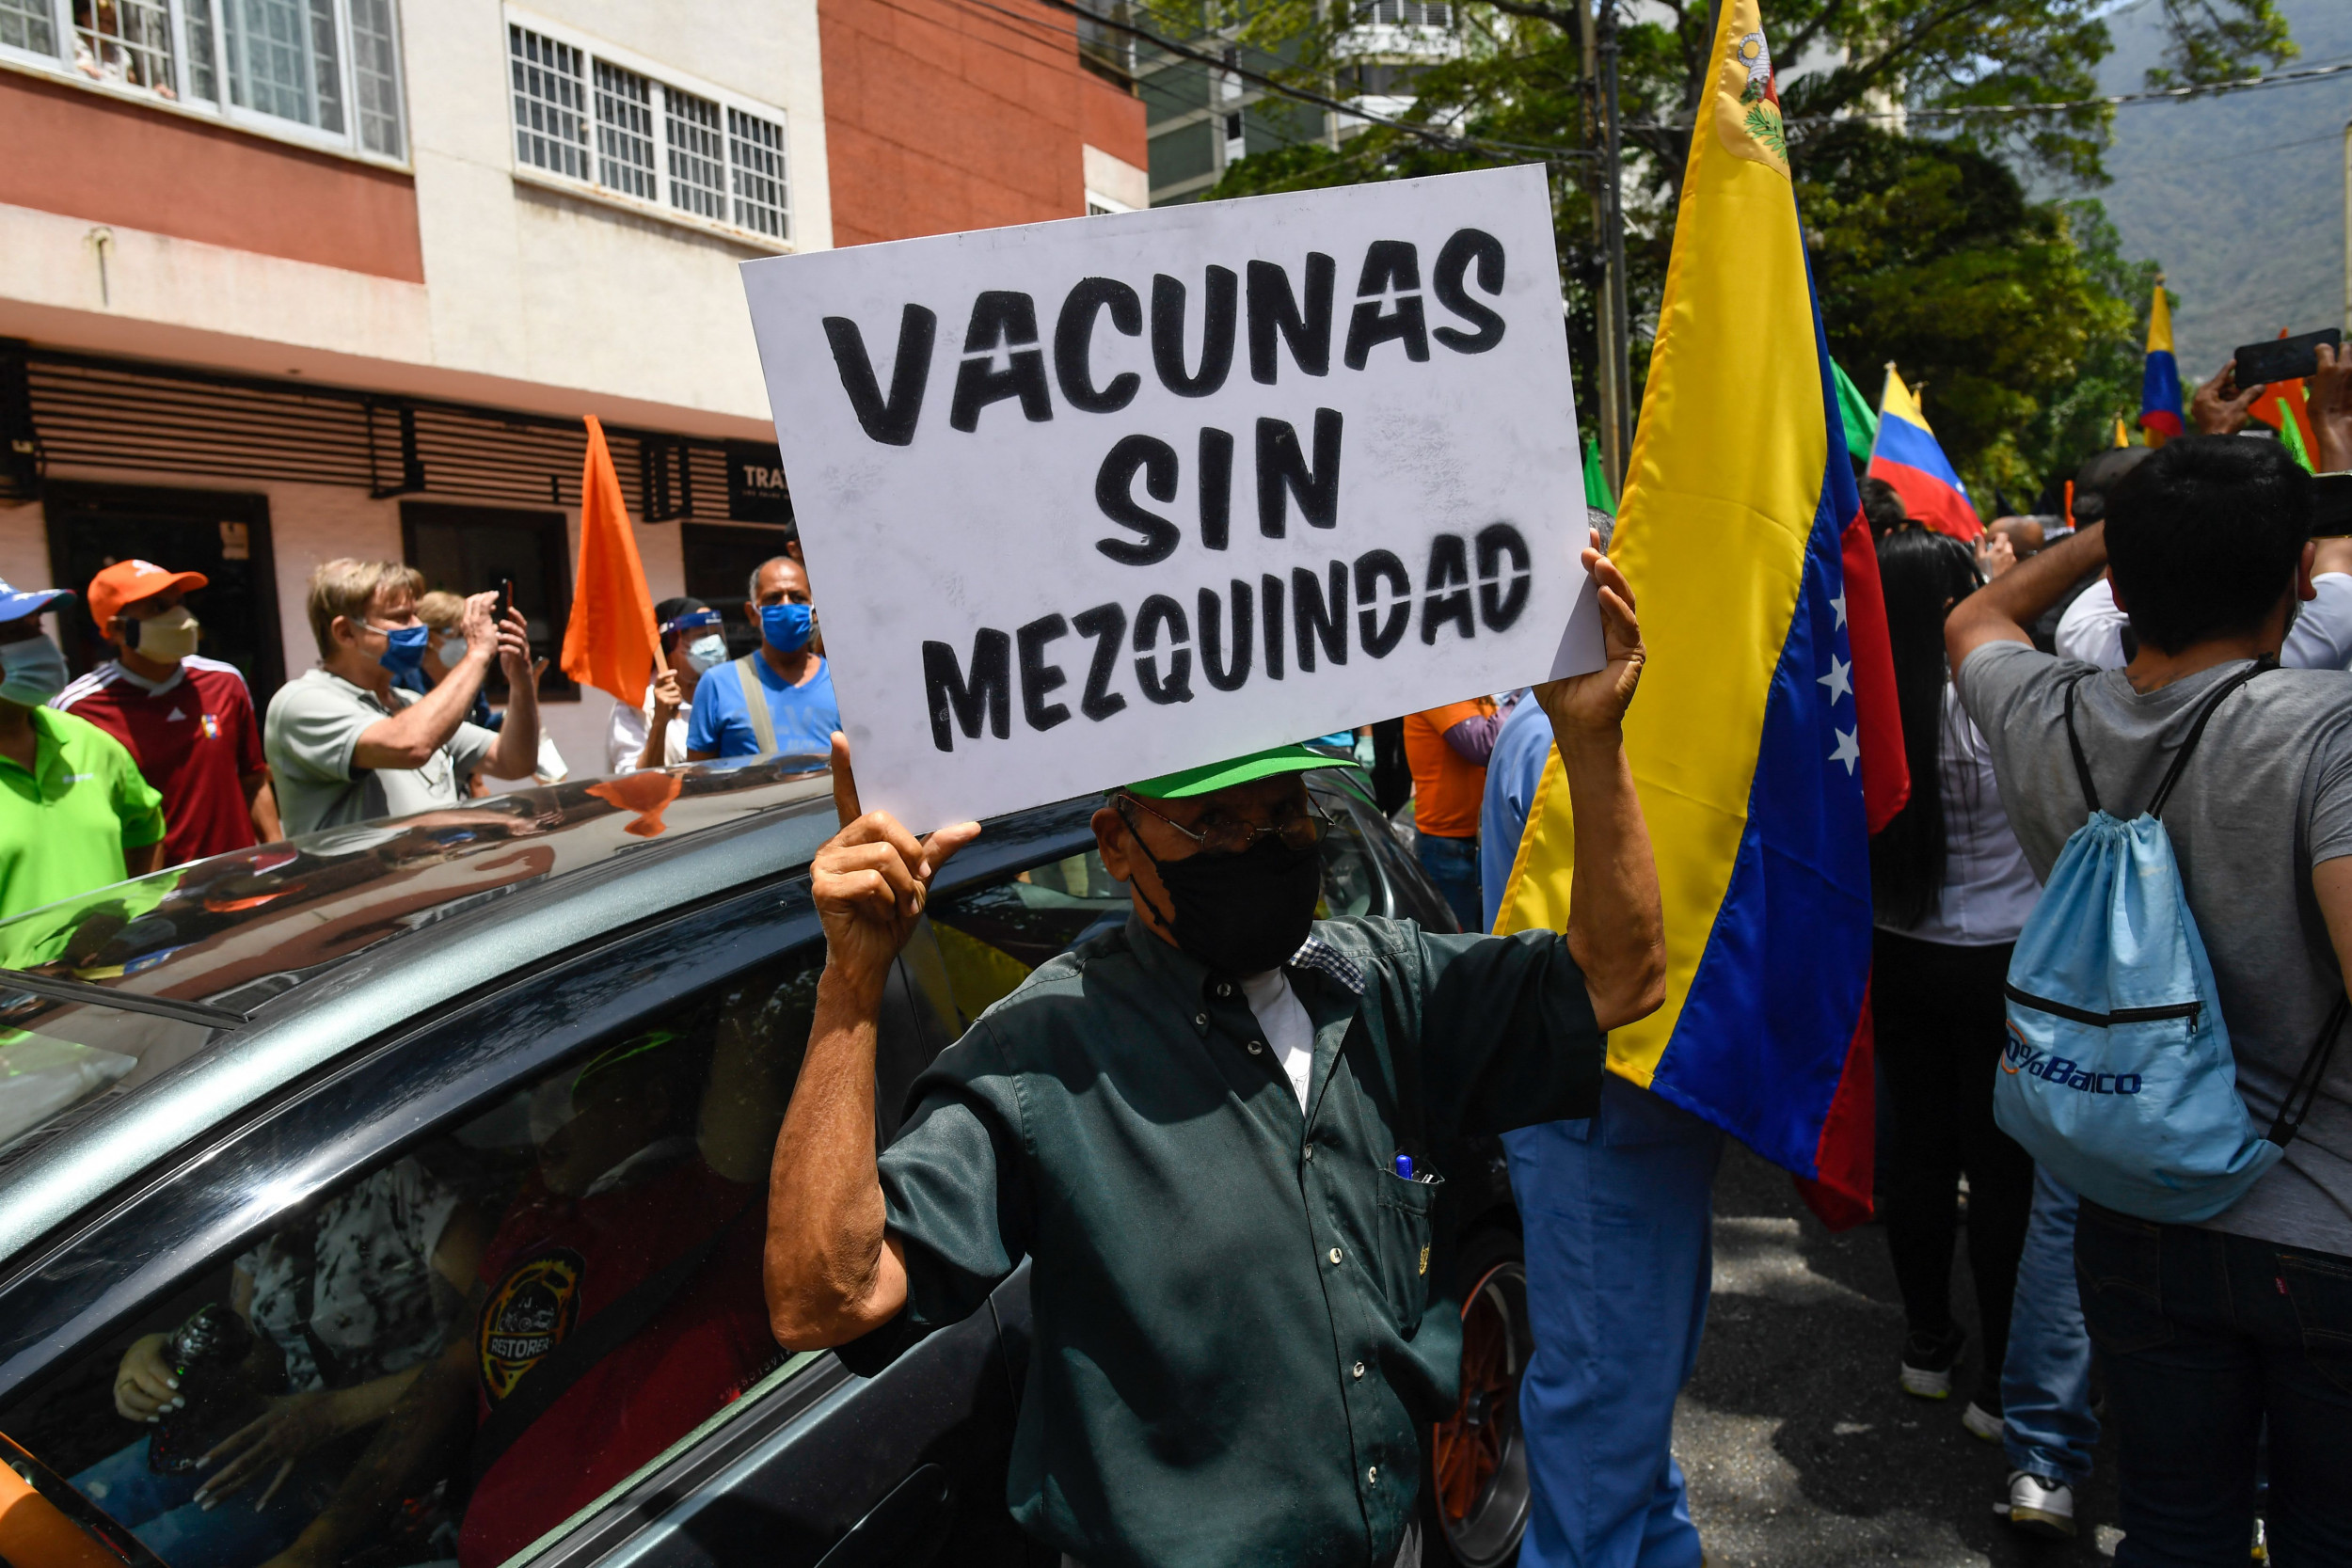 Florida voter reactions could be key to U.S. decisions on Venezuela policies